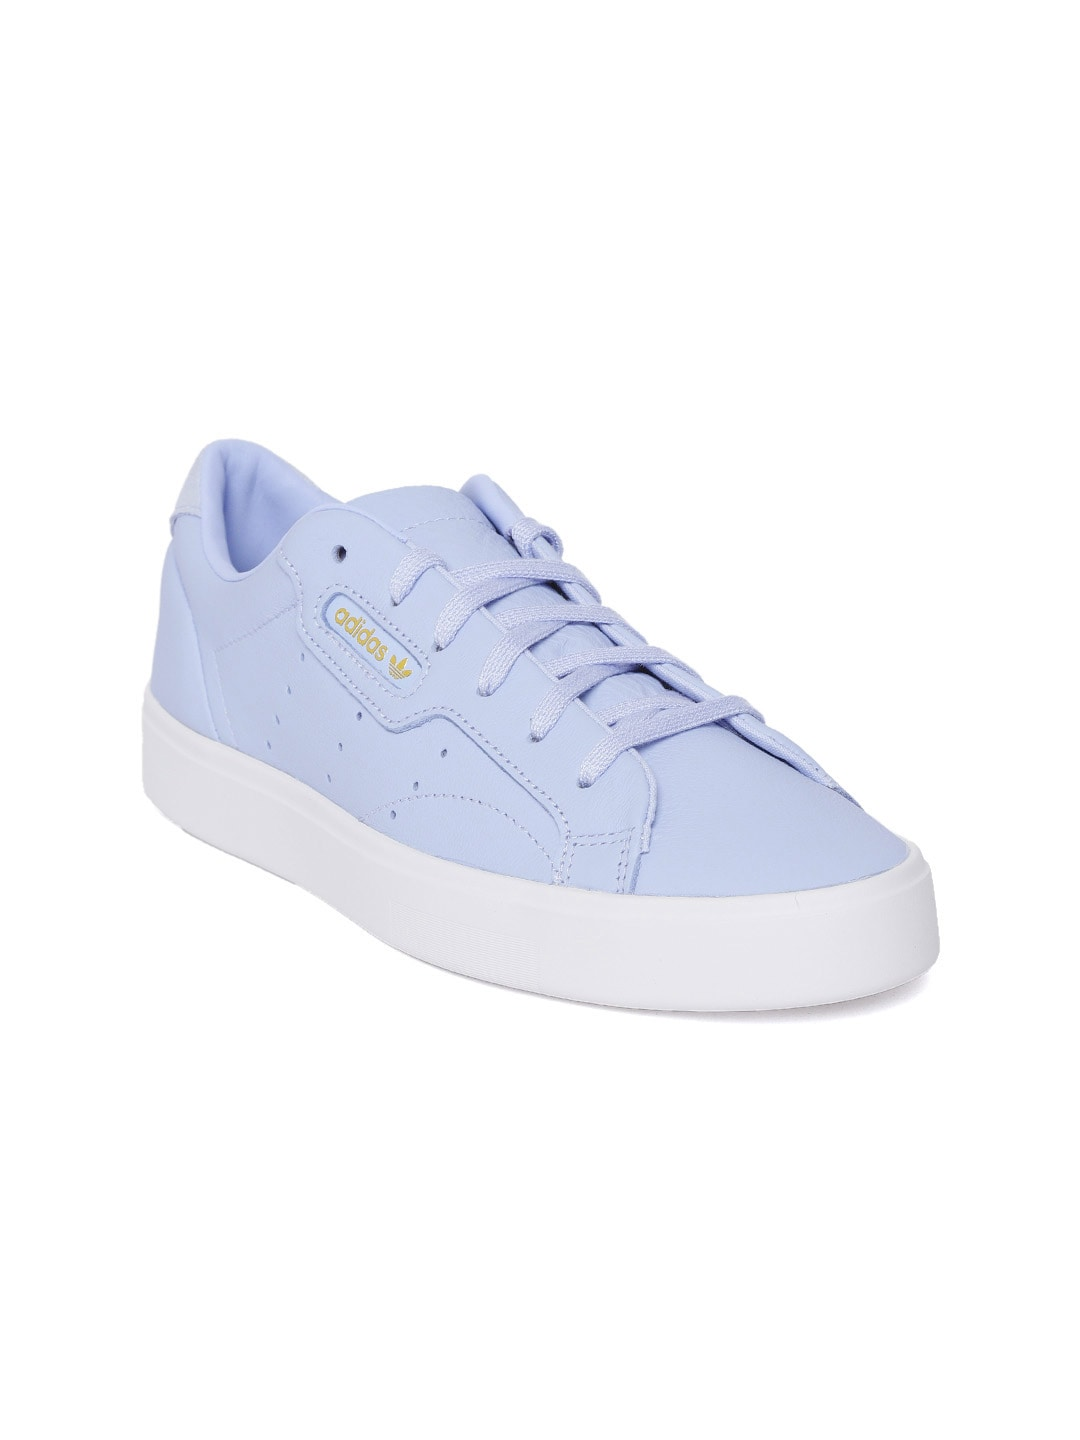 check out edadc d7ea7 Casual Shoes For Women - Buy Women s Casual Shoes Online from Myntra